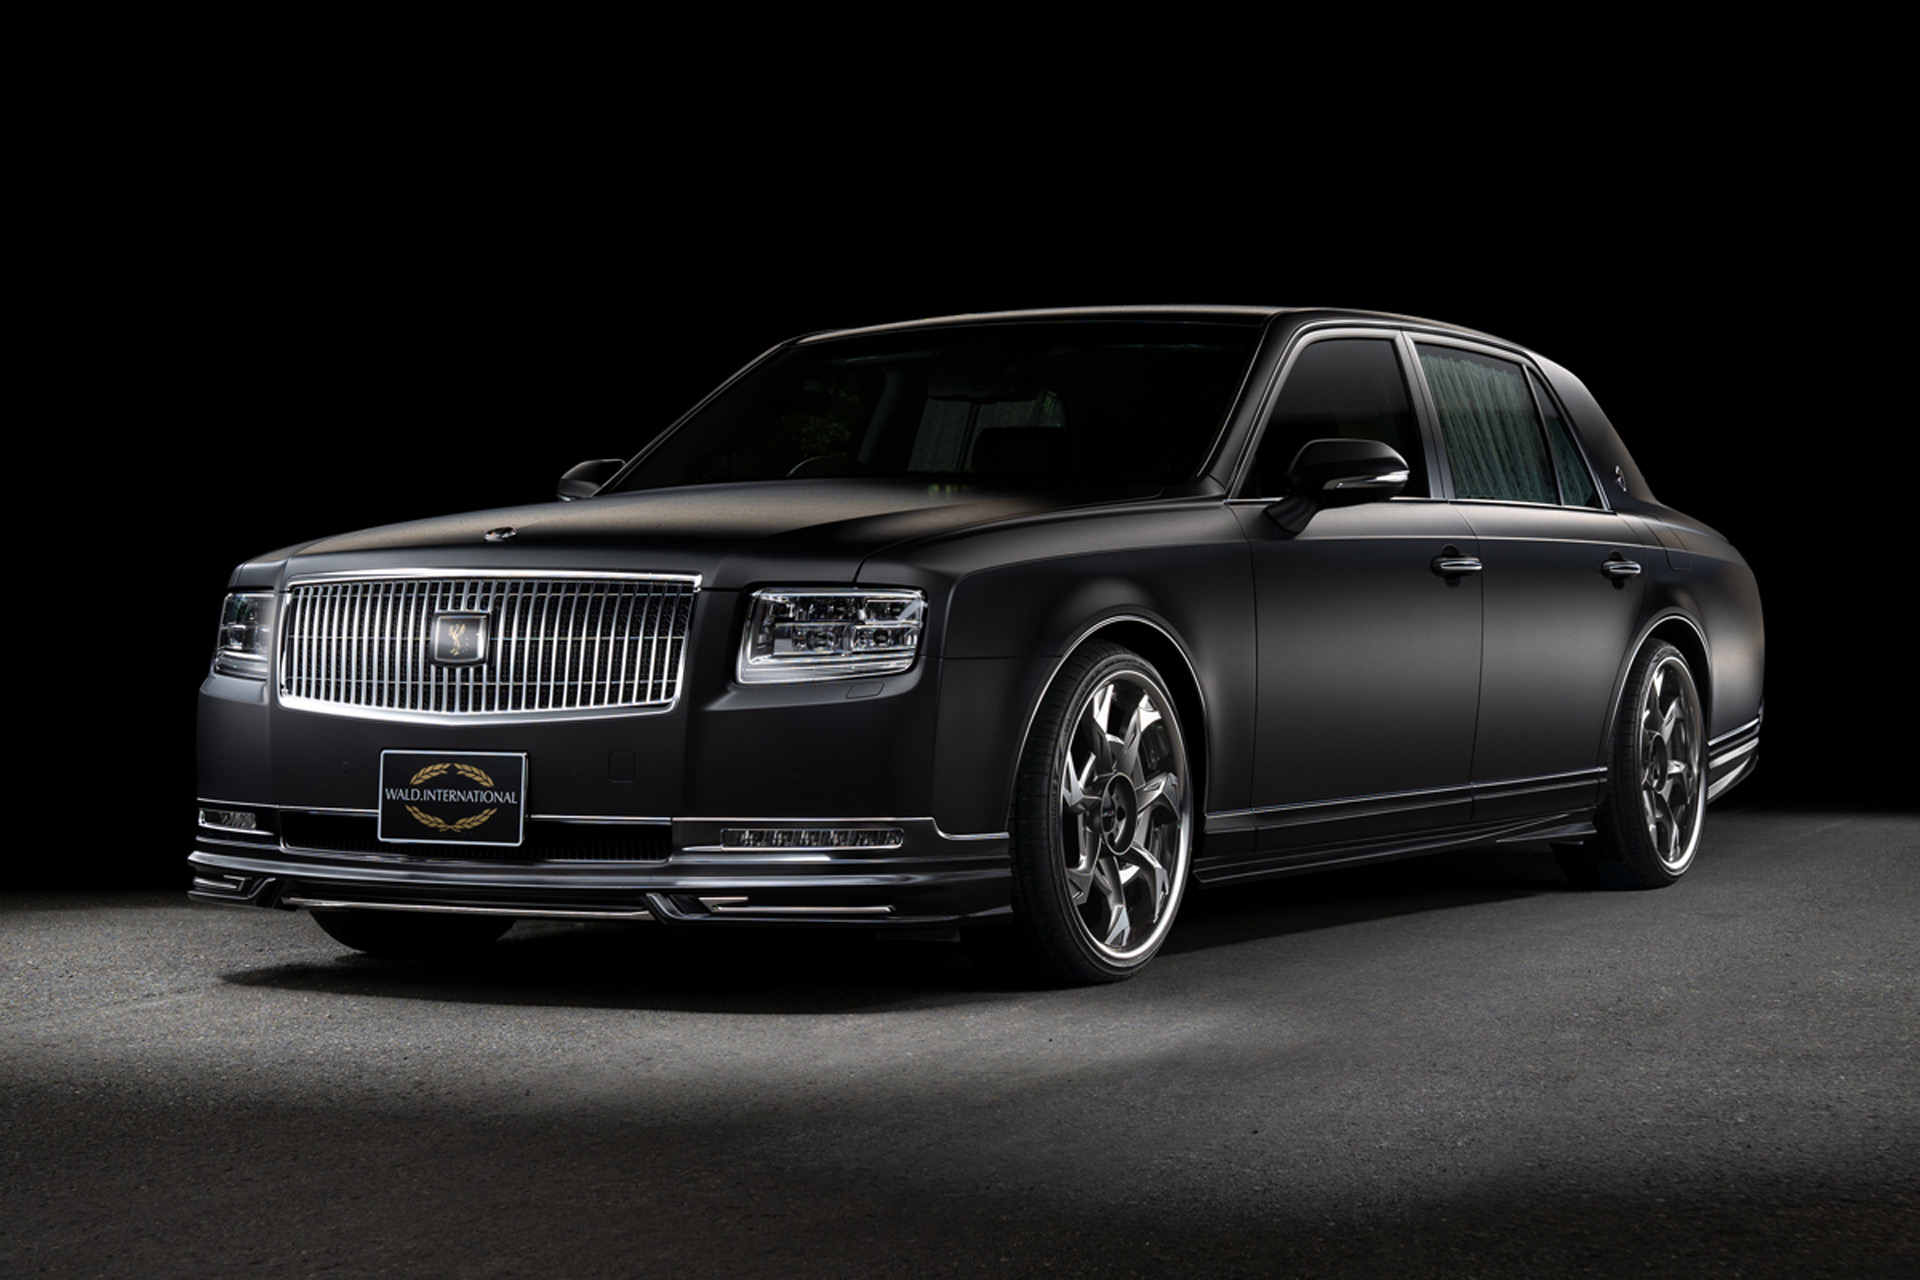 Toyota Century By Wald Is A Boss Luxury Cruiser From Japan